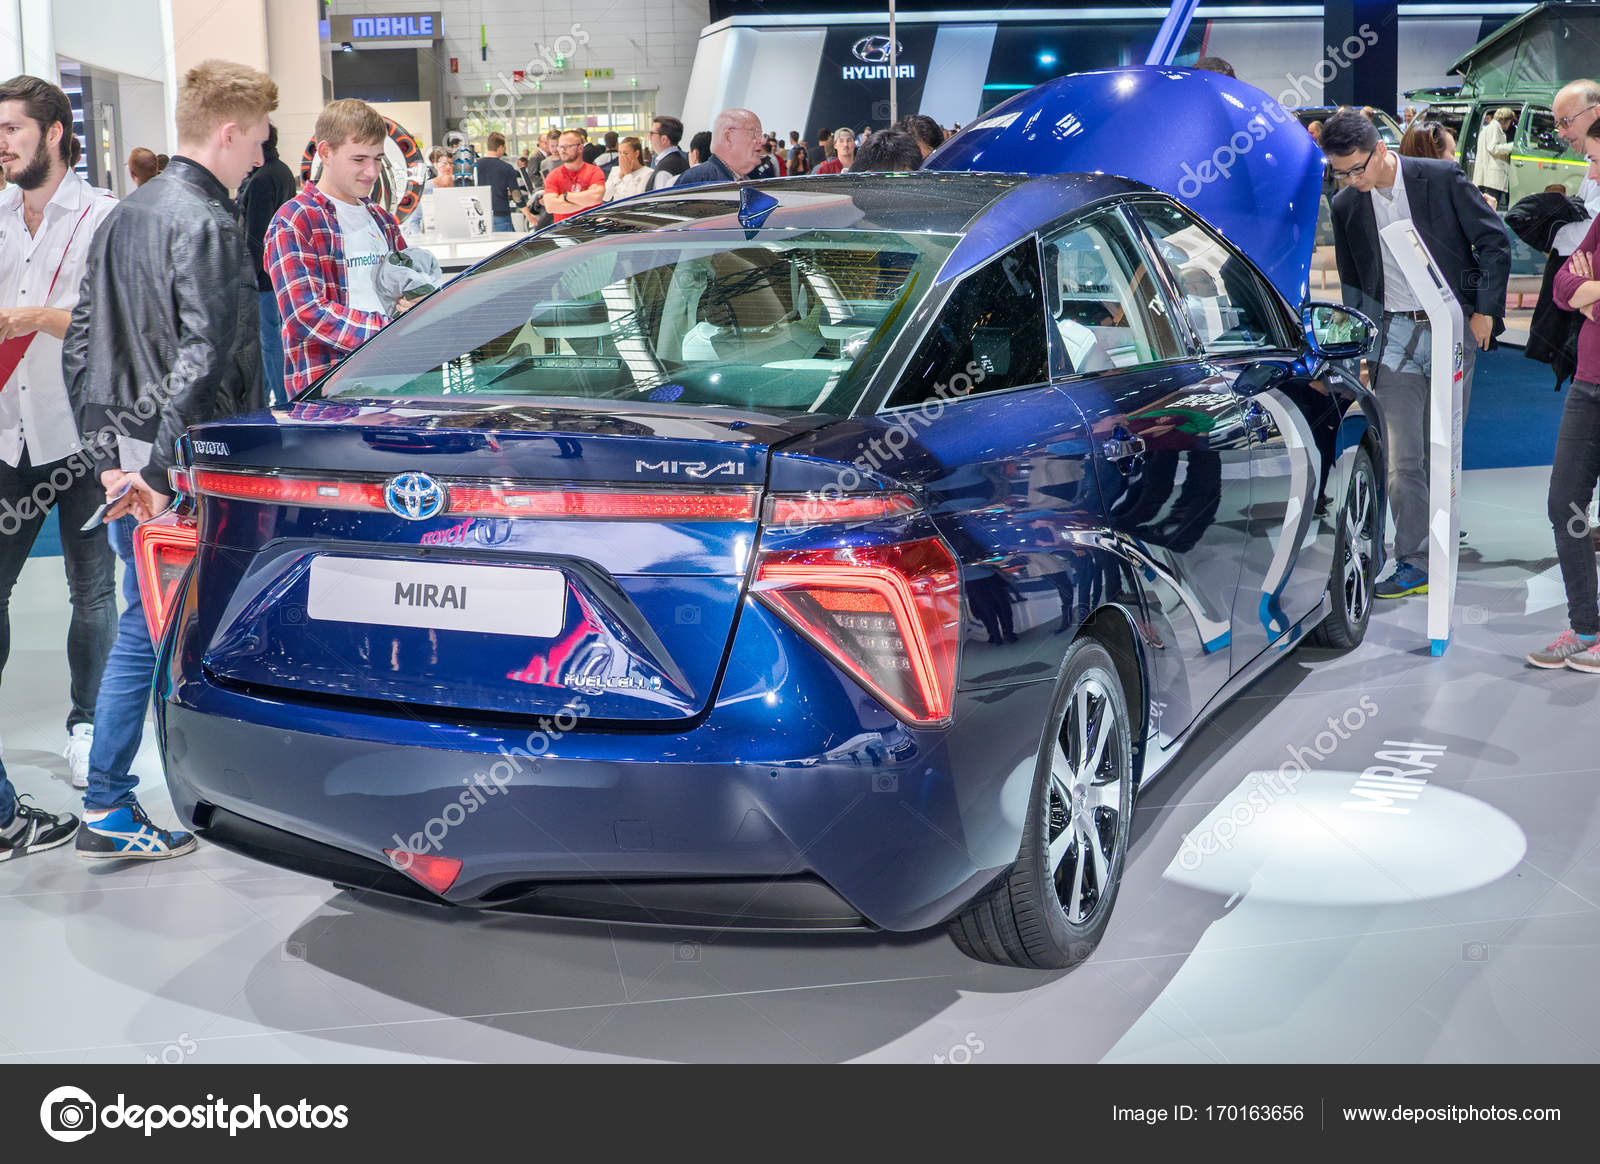 Images: toyota mirai | Toyota Mirai hydrogen fuel cell